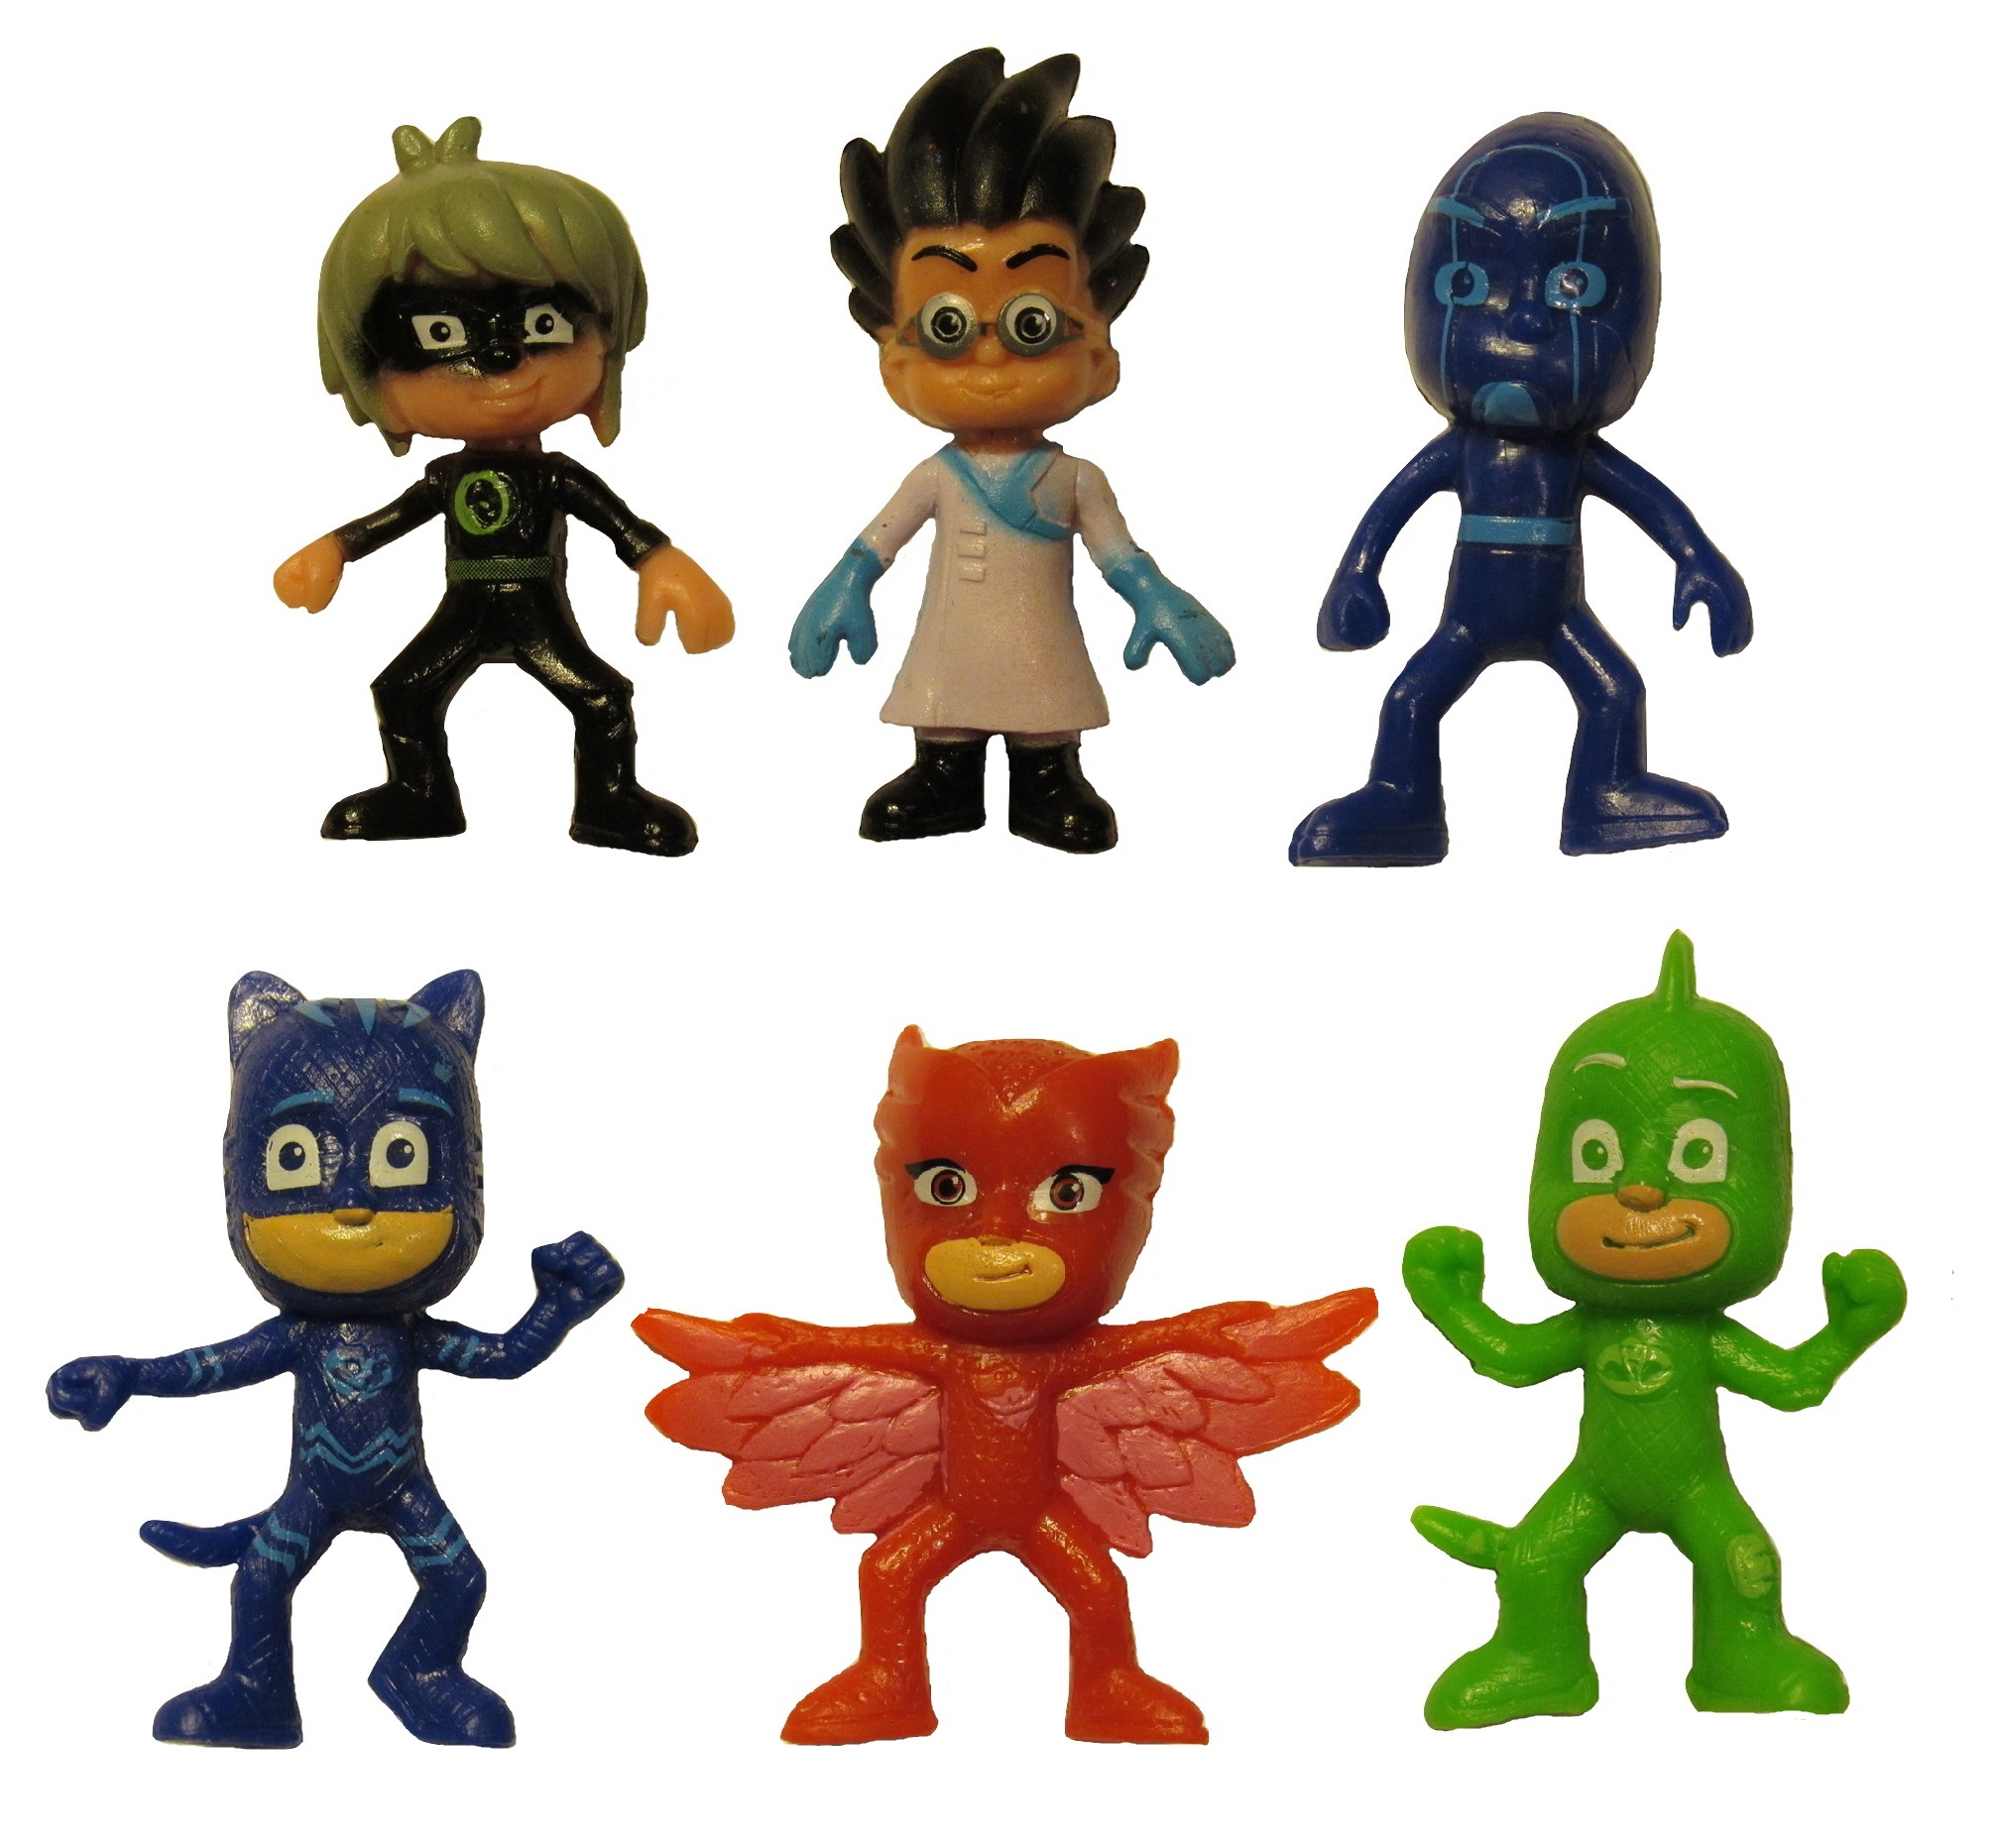 6pc Pj Masks Cake Topper Catboy Owlette Gekko Superhero 6 Figure Set Birthday Party Cupcakes Figurines Fast Shipping Connor Amaya Greg Toy Doll Set